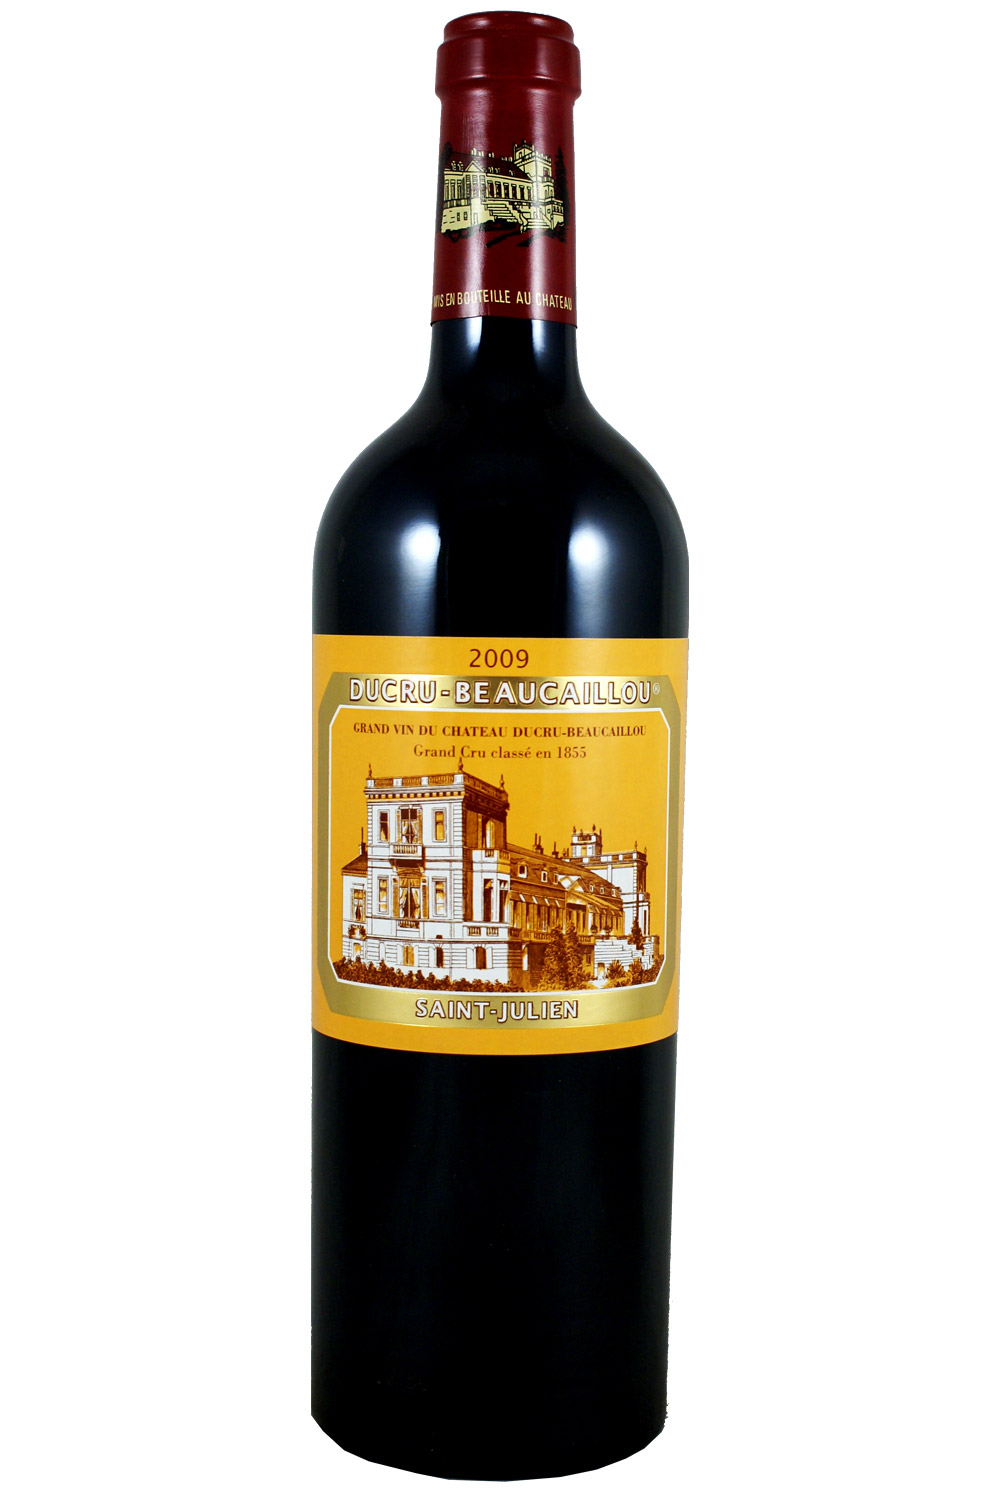 2009 Ducru Beaucaillou Bordeaux Red 750 ml